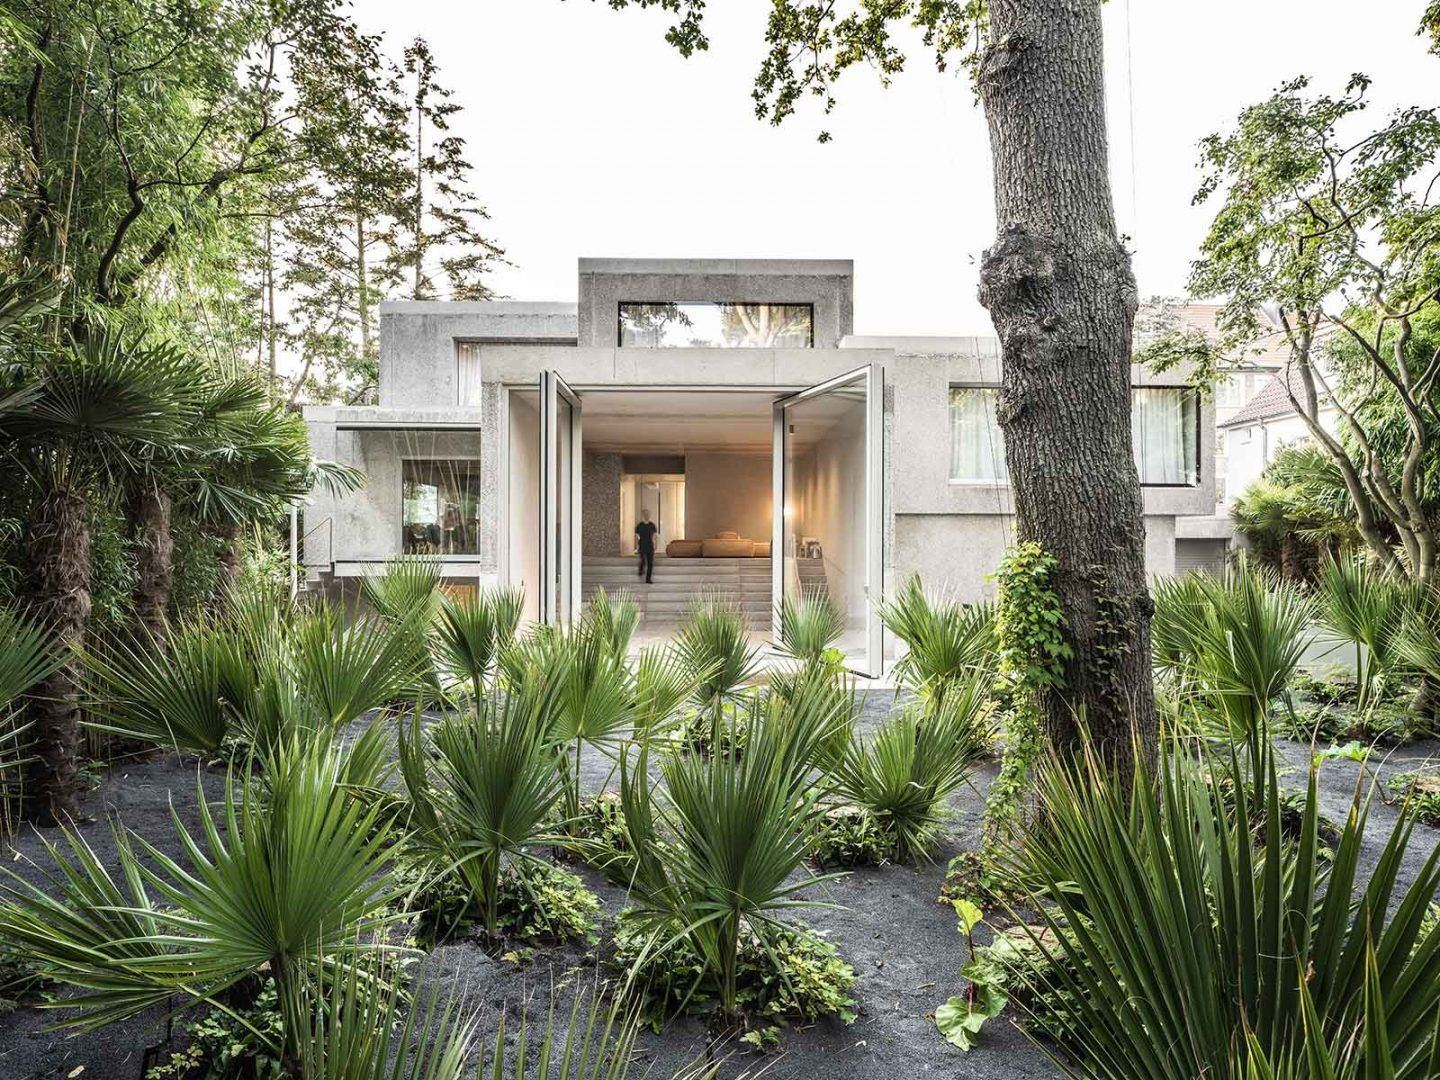 Casa Morgana: Brutalist German Home Transformed with Plants